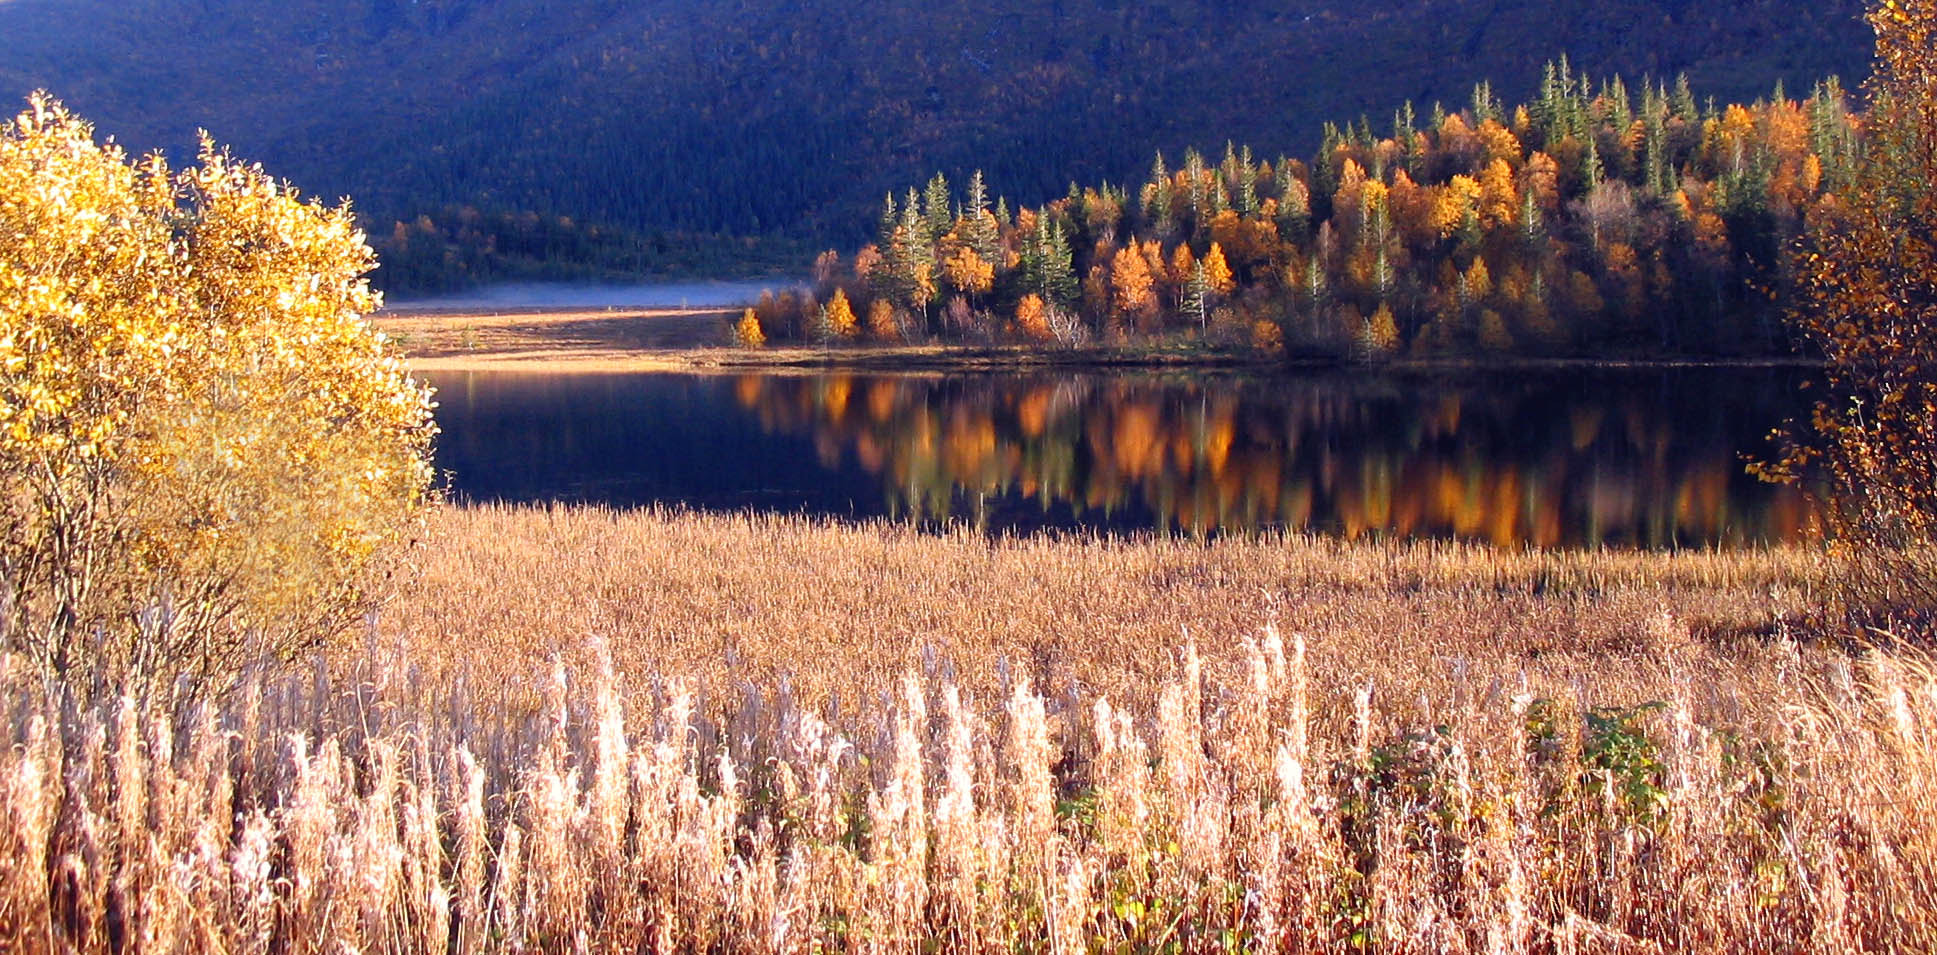 Photograph Autumn by Kent Lennart Vassdal on 500px